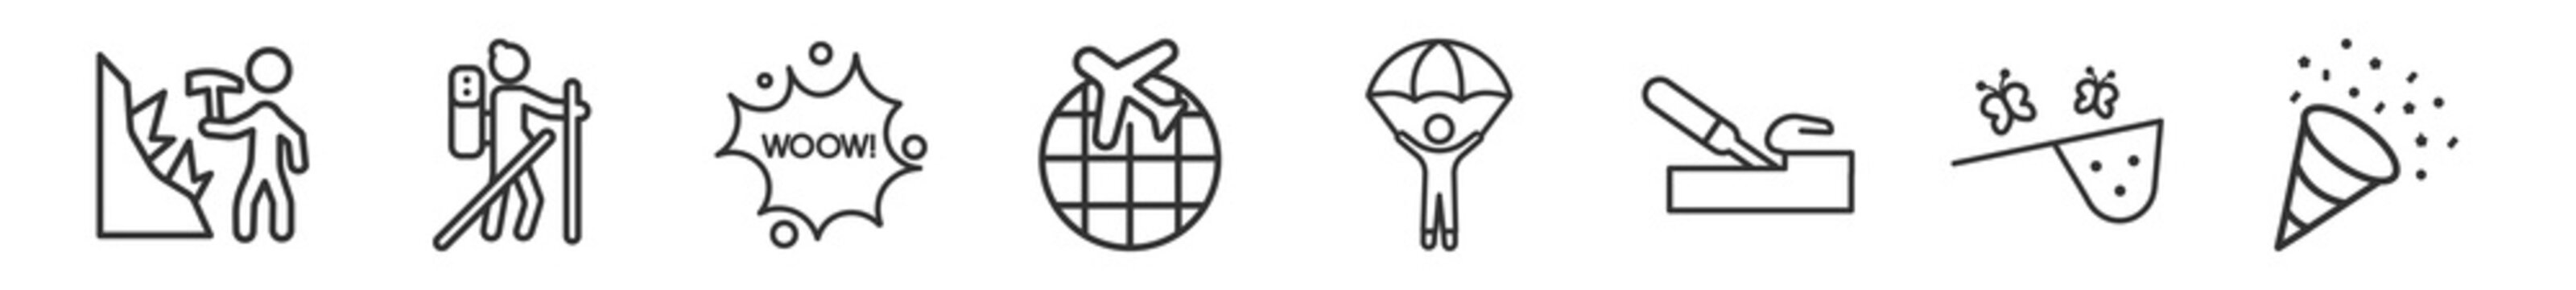 outline set of activities line icons. linear vector icons such as mineral collecting, mountaineering, comic, travelling, gliding parachutist, party. vector illustration.